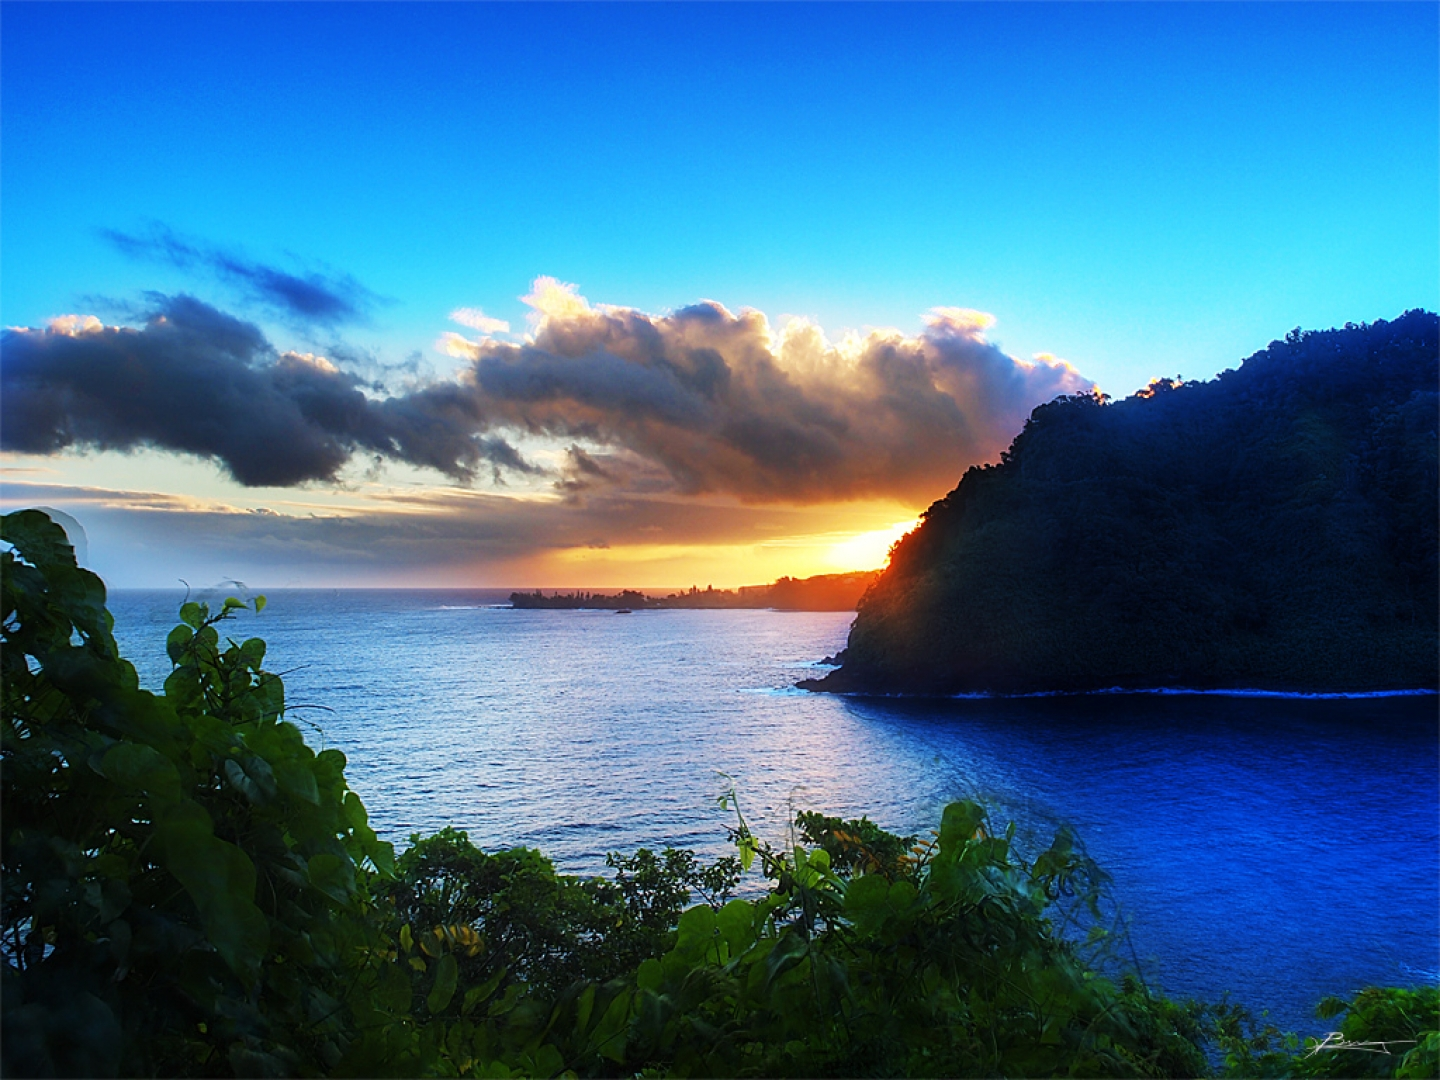 hawaii beach sunrise wallpaper Download pacific morning beach and ...